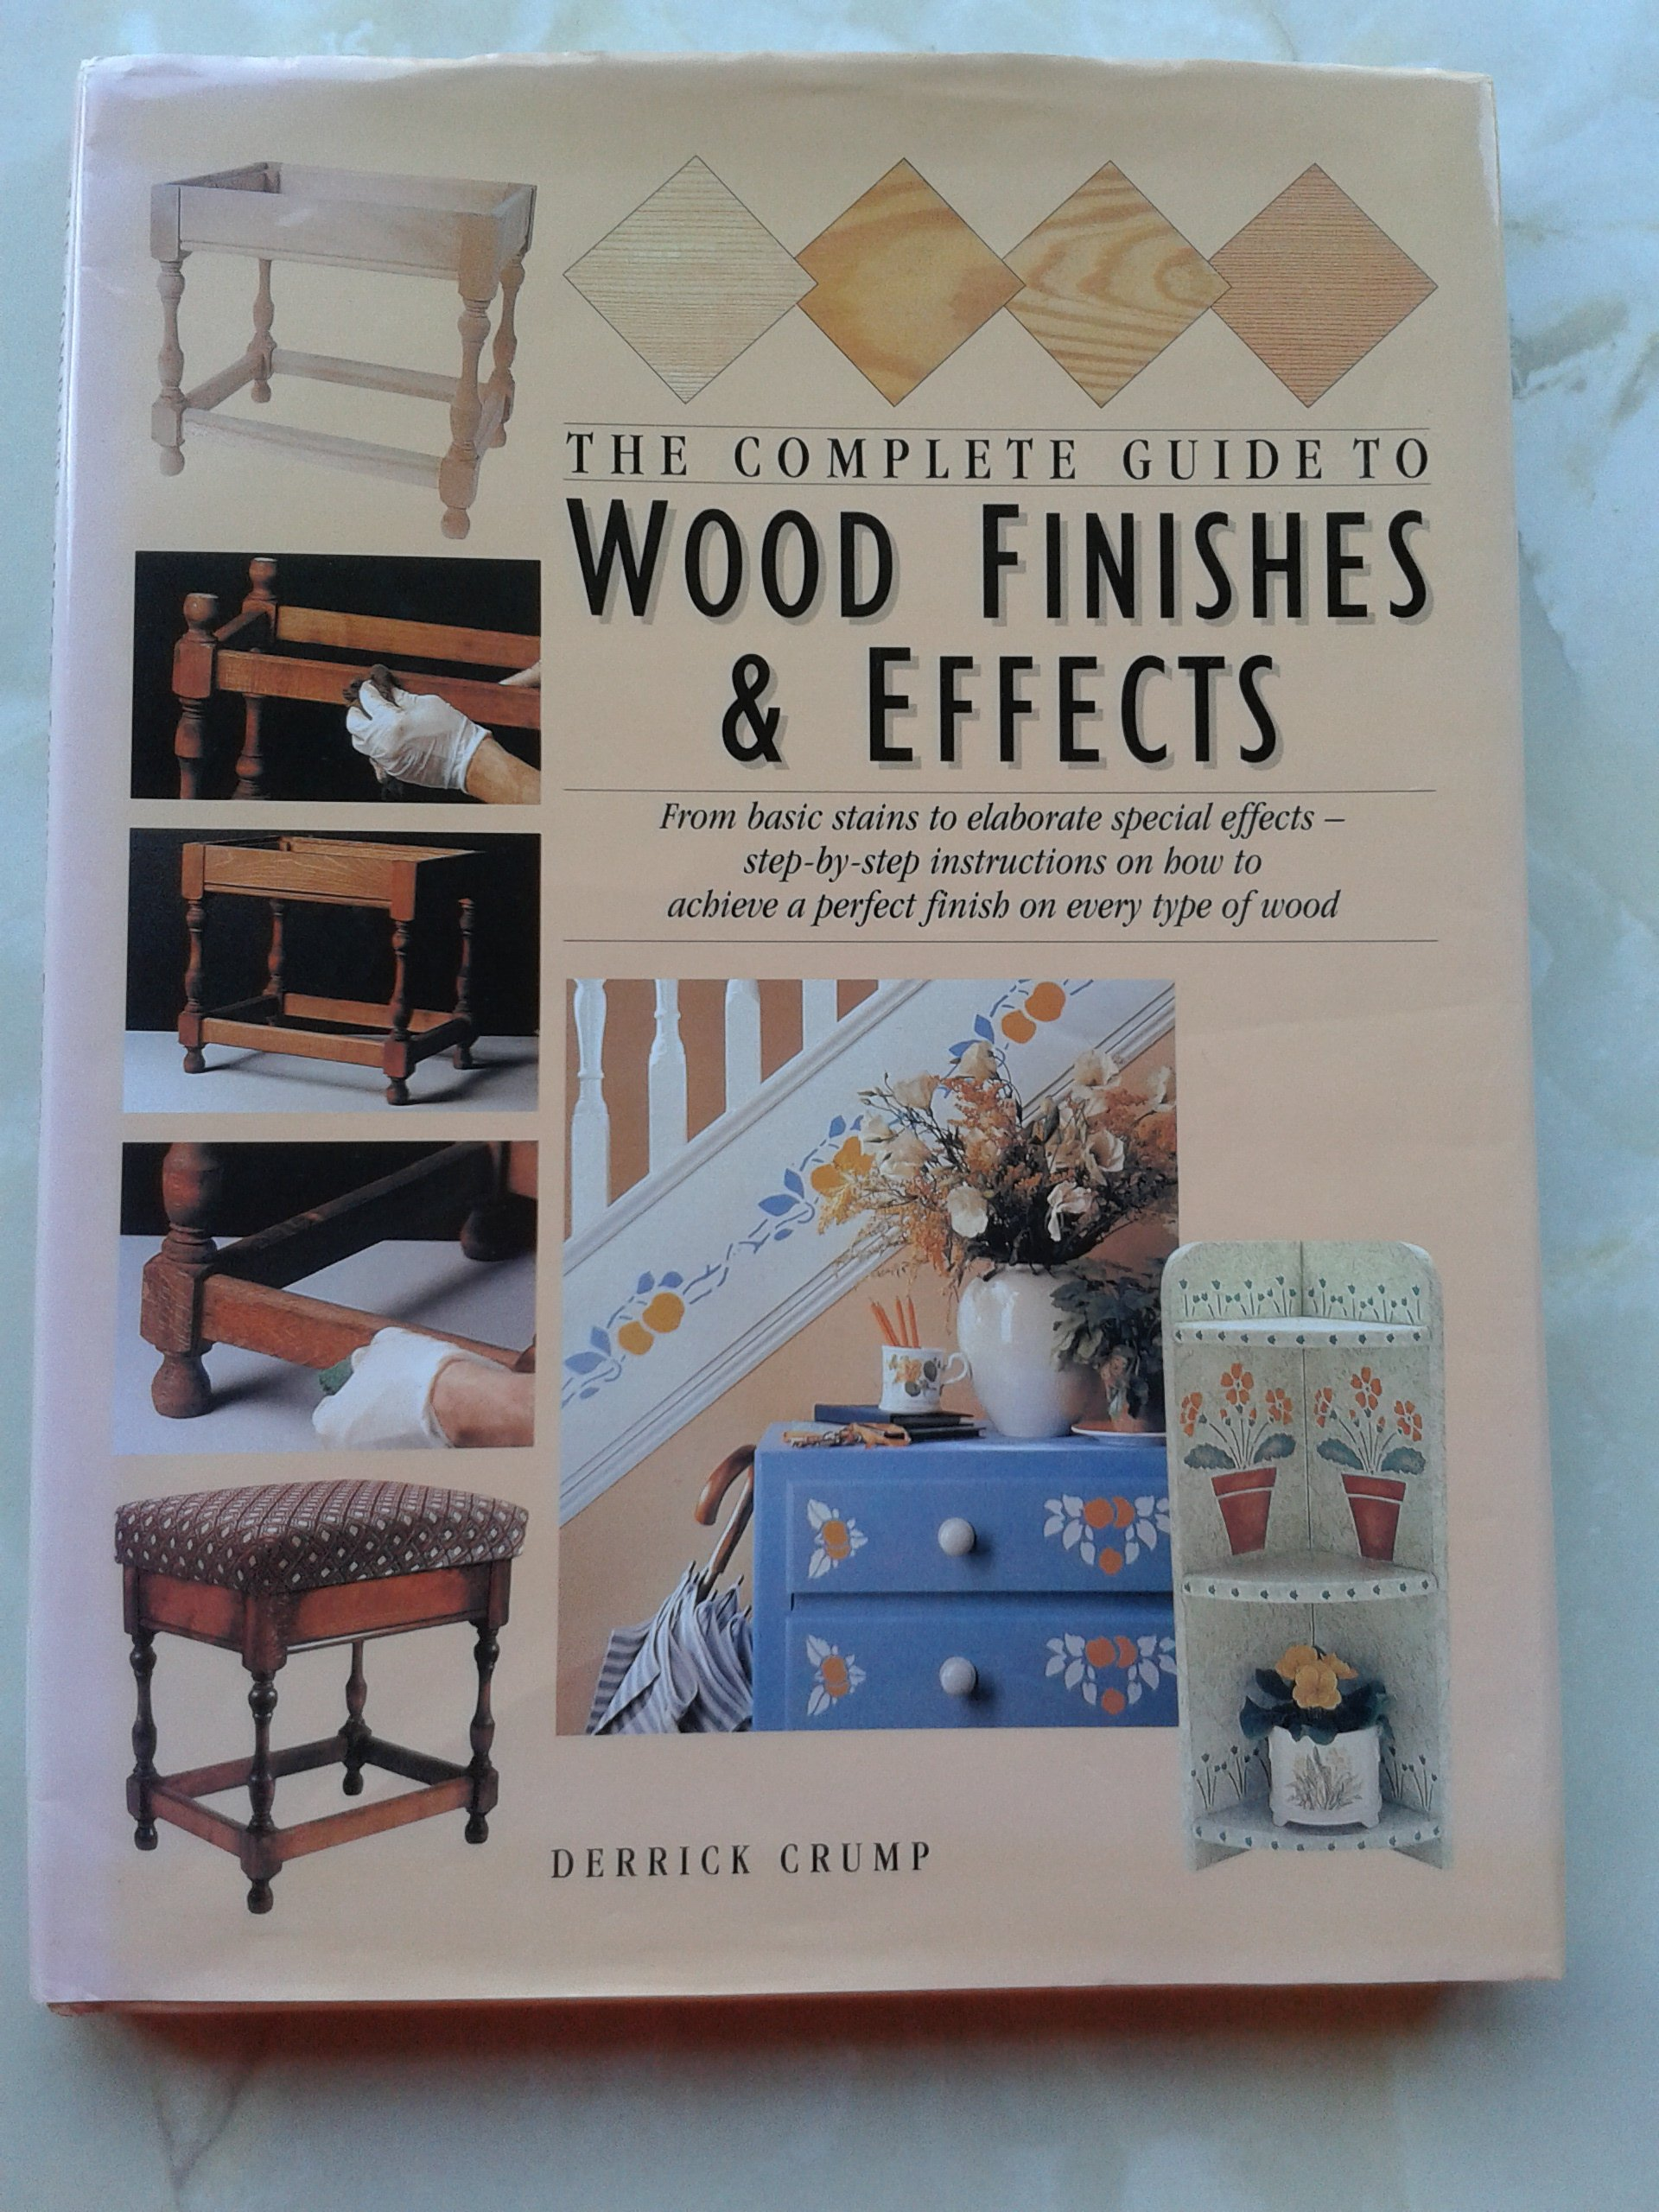 the-complete-guide-to-wood-finishes-and-effects-from-basic-stains-to-elaborate-special-effects-step-by-step-instructions-on-how-to-achieve-a-perfect-finish-on-every-type-of-wood